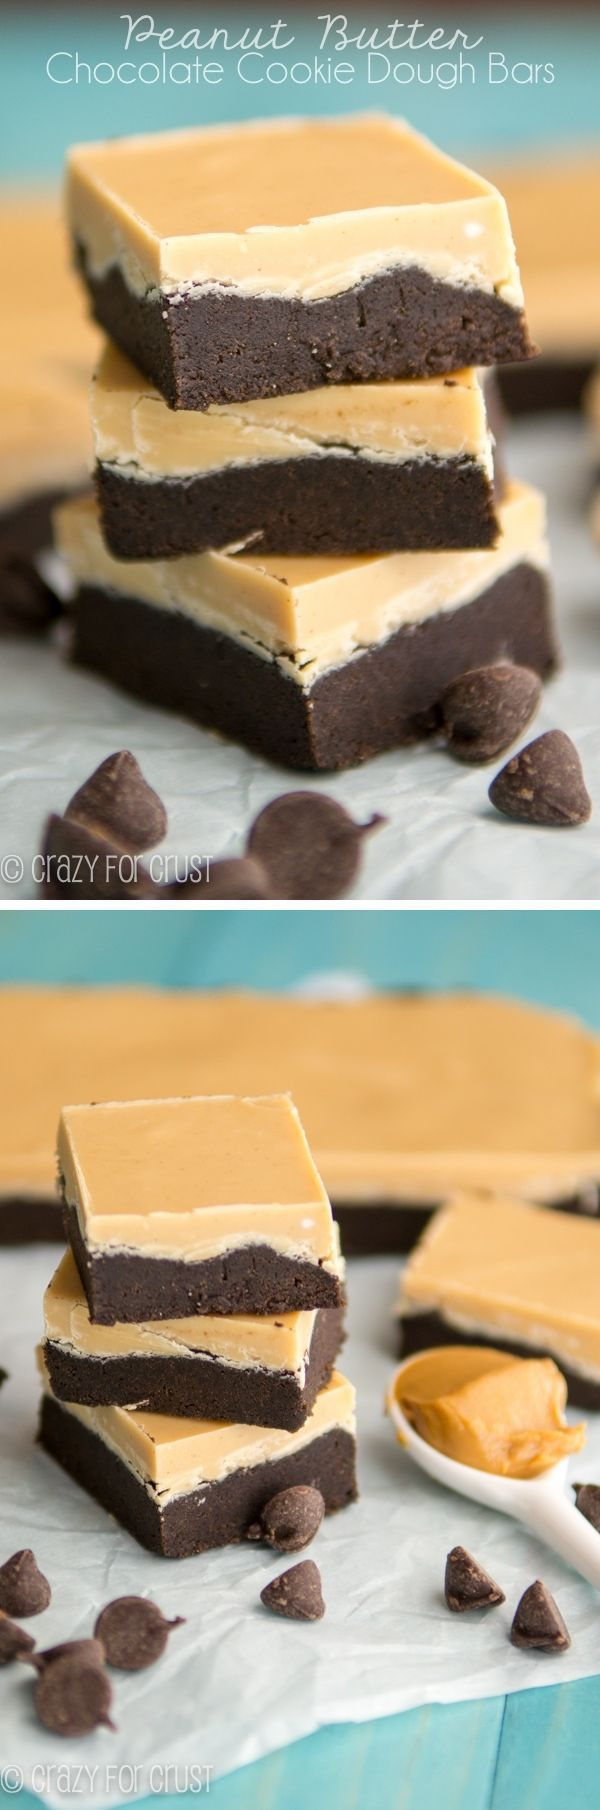 Peanut Butter Chocolate Cookie Dough Bars | http://crazyforcrust.com | Egg-less chocolate cookie dough pressed into a pan and topped with peanut butter!